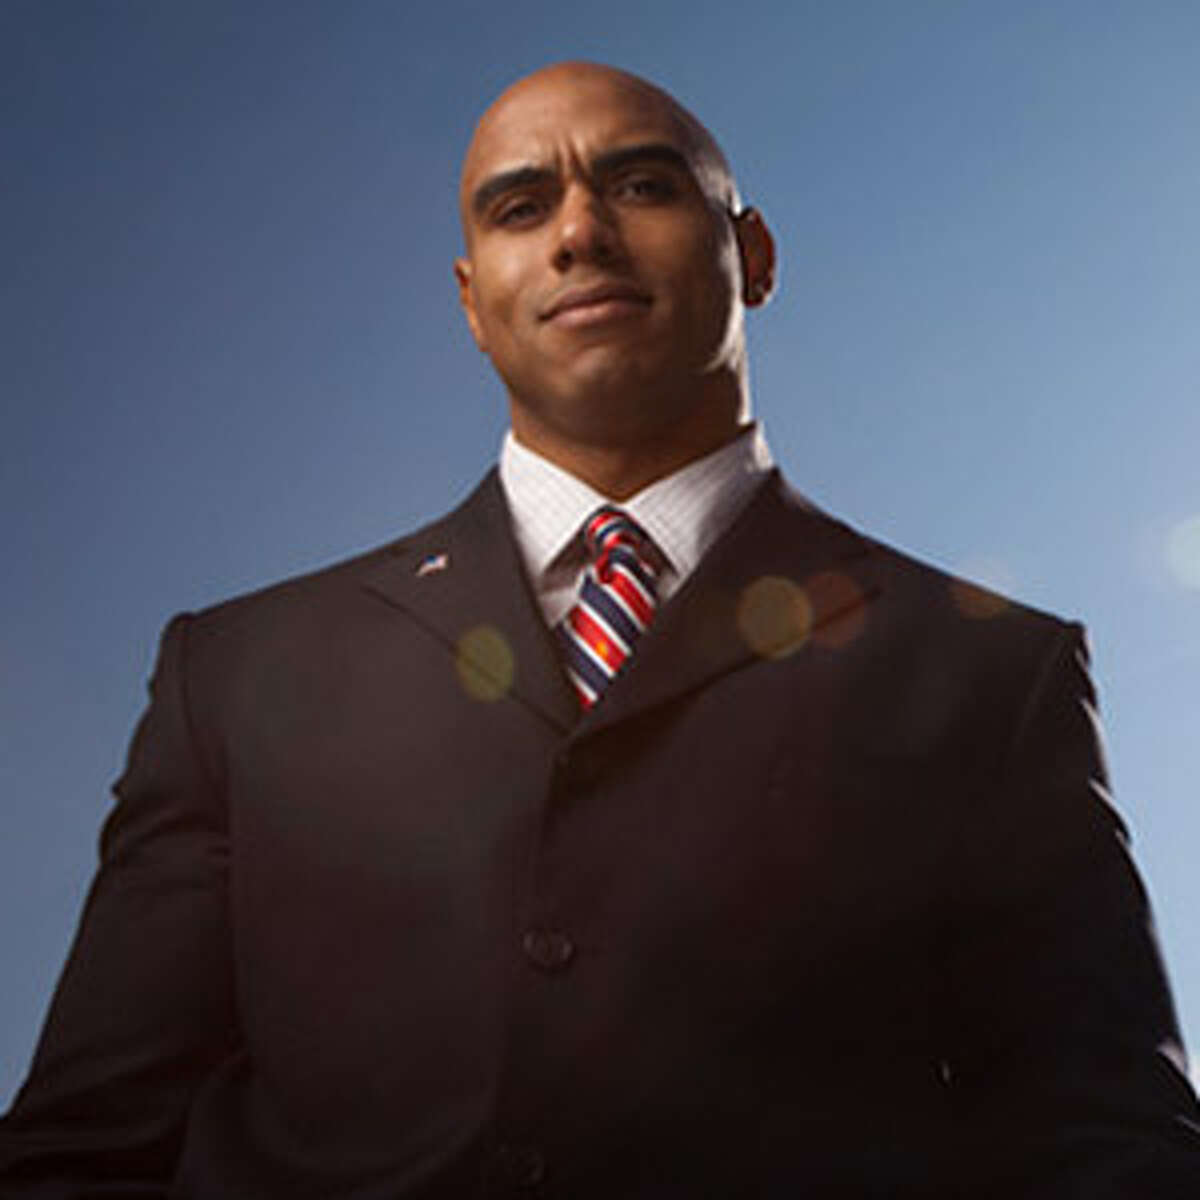 Candidate:Andre Nigel BarnettThe Reform Party's candidate has served in the U.S. Army and currently is president/CEO at WiseDome Inc. While starting WiseDome, he also worked as a fitness model. Barnett says on his website: